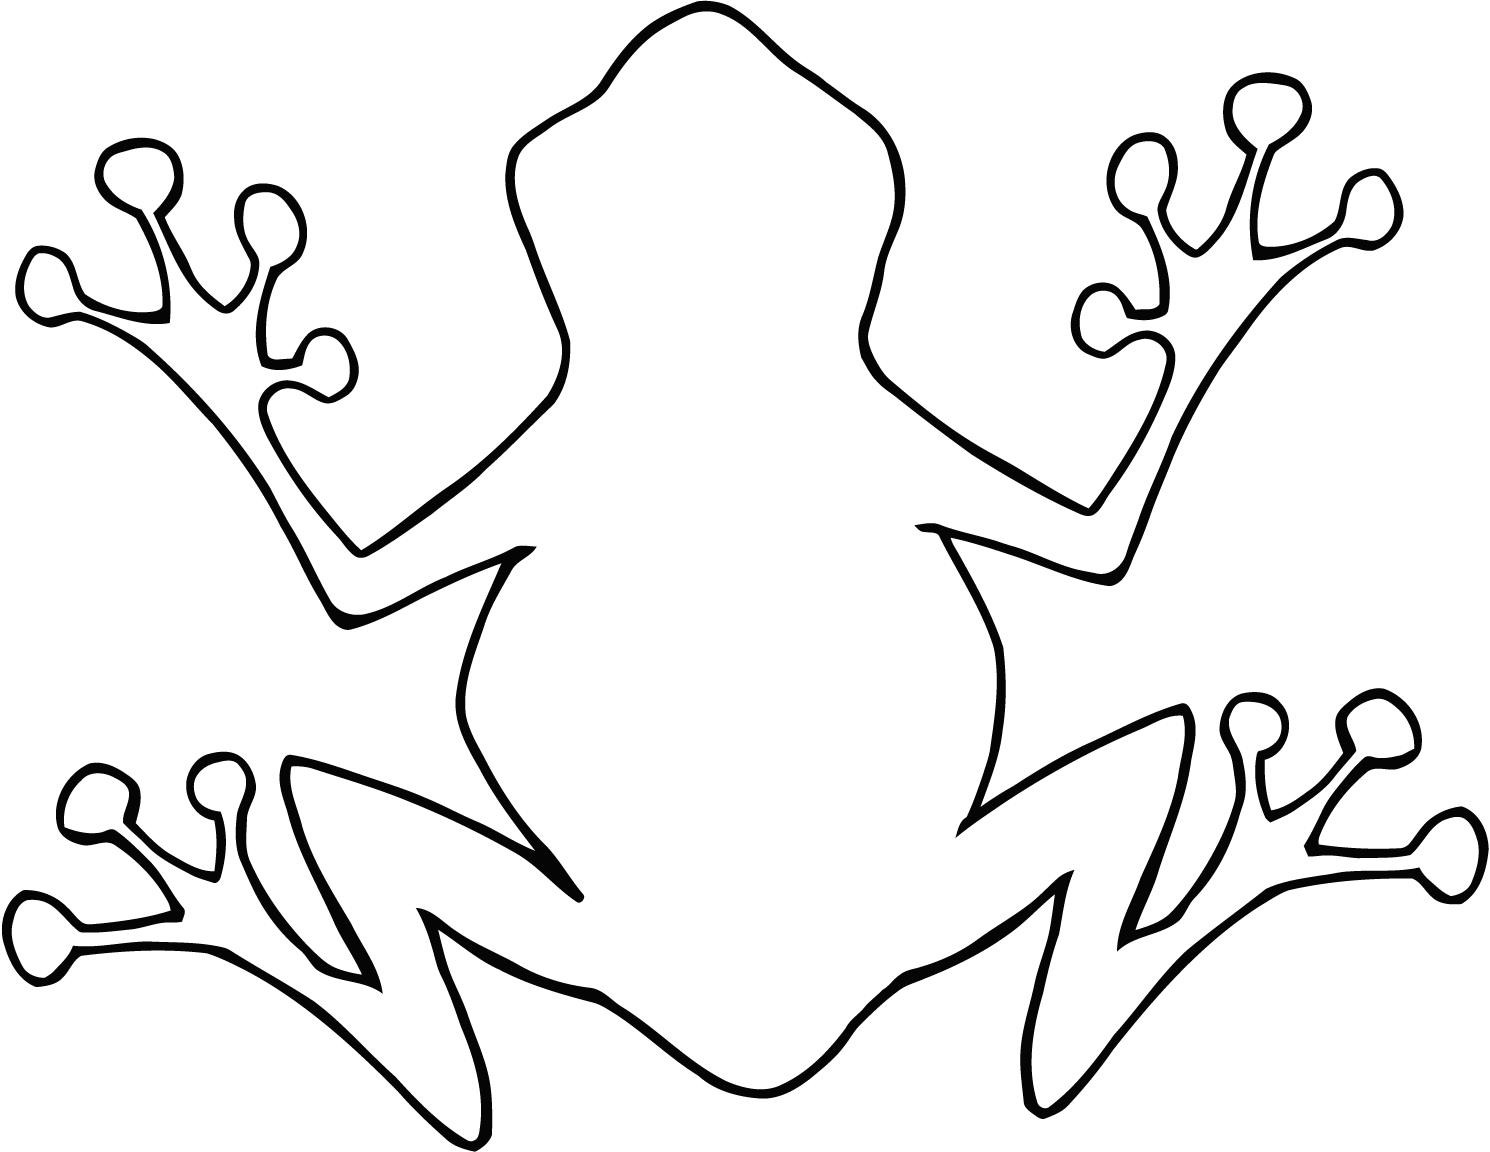 1490x1152 Unique Printable Animal Outlines Coloring Pages Activities